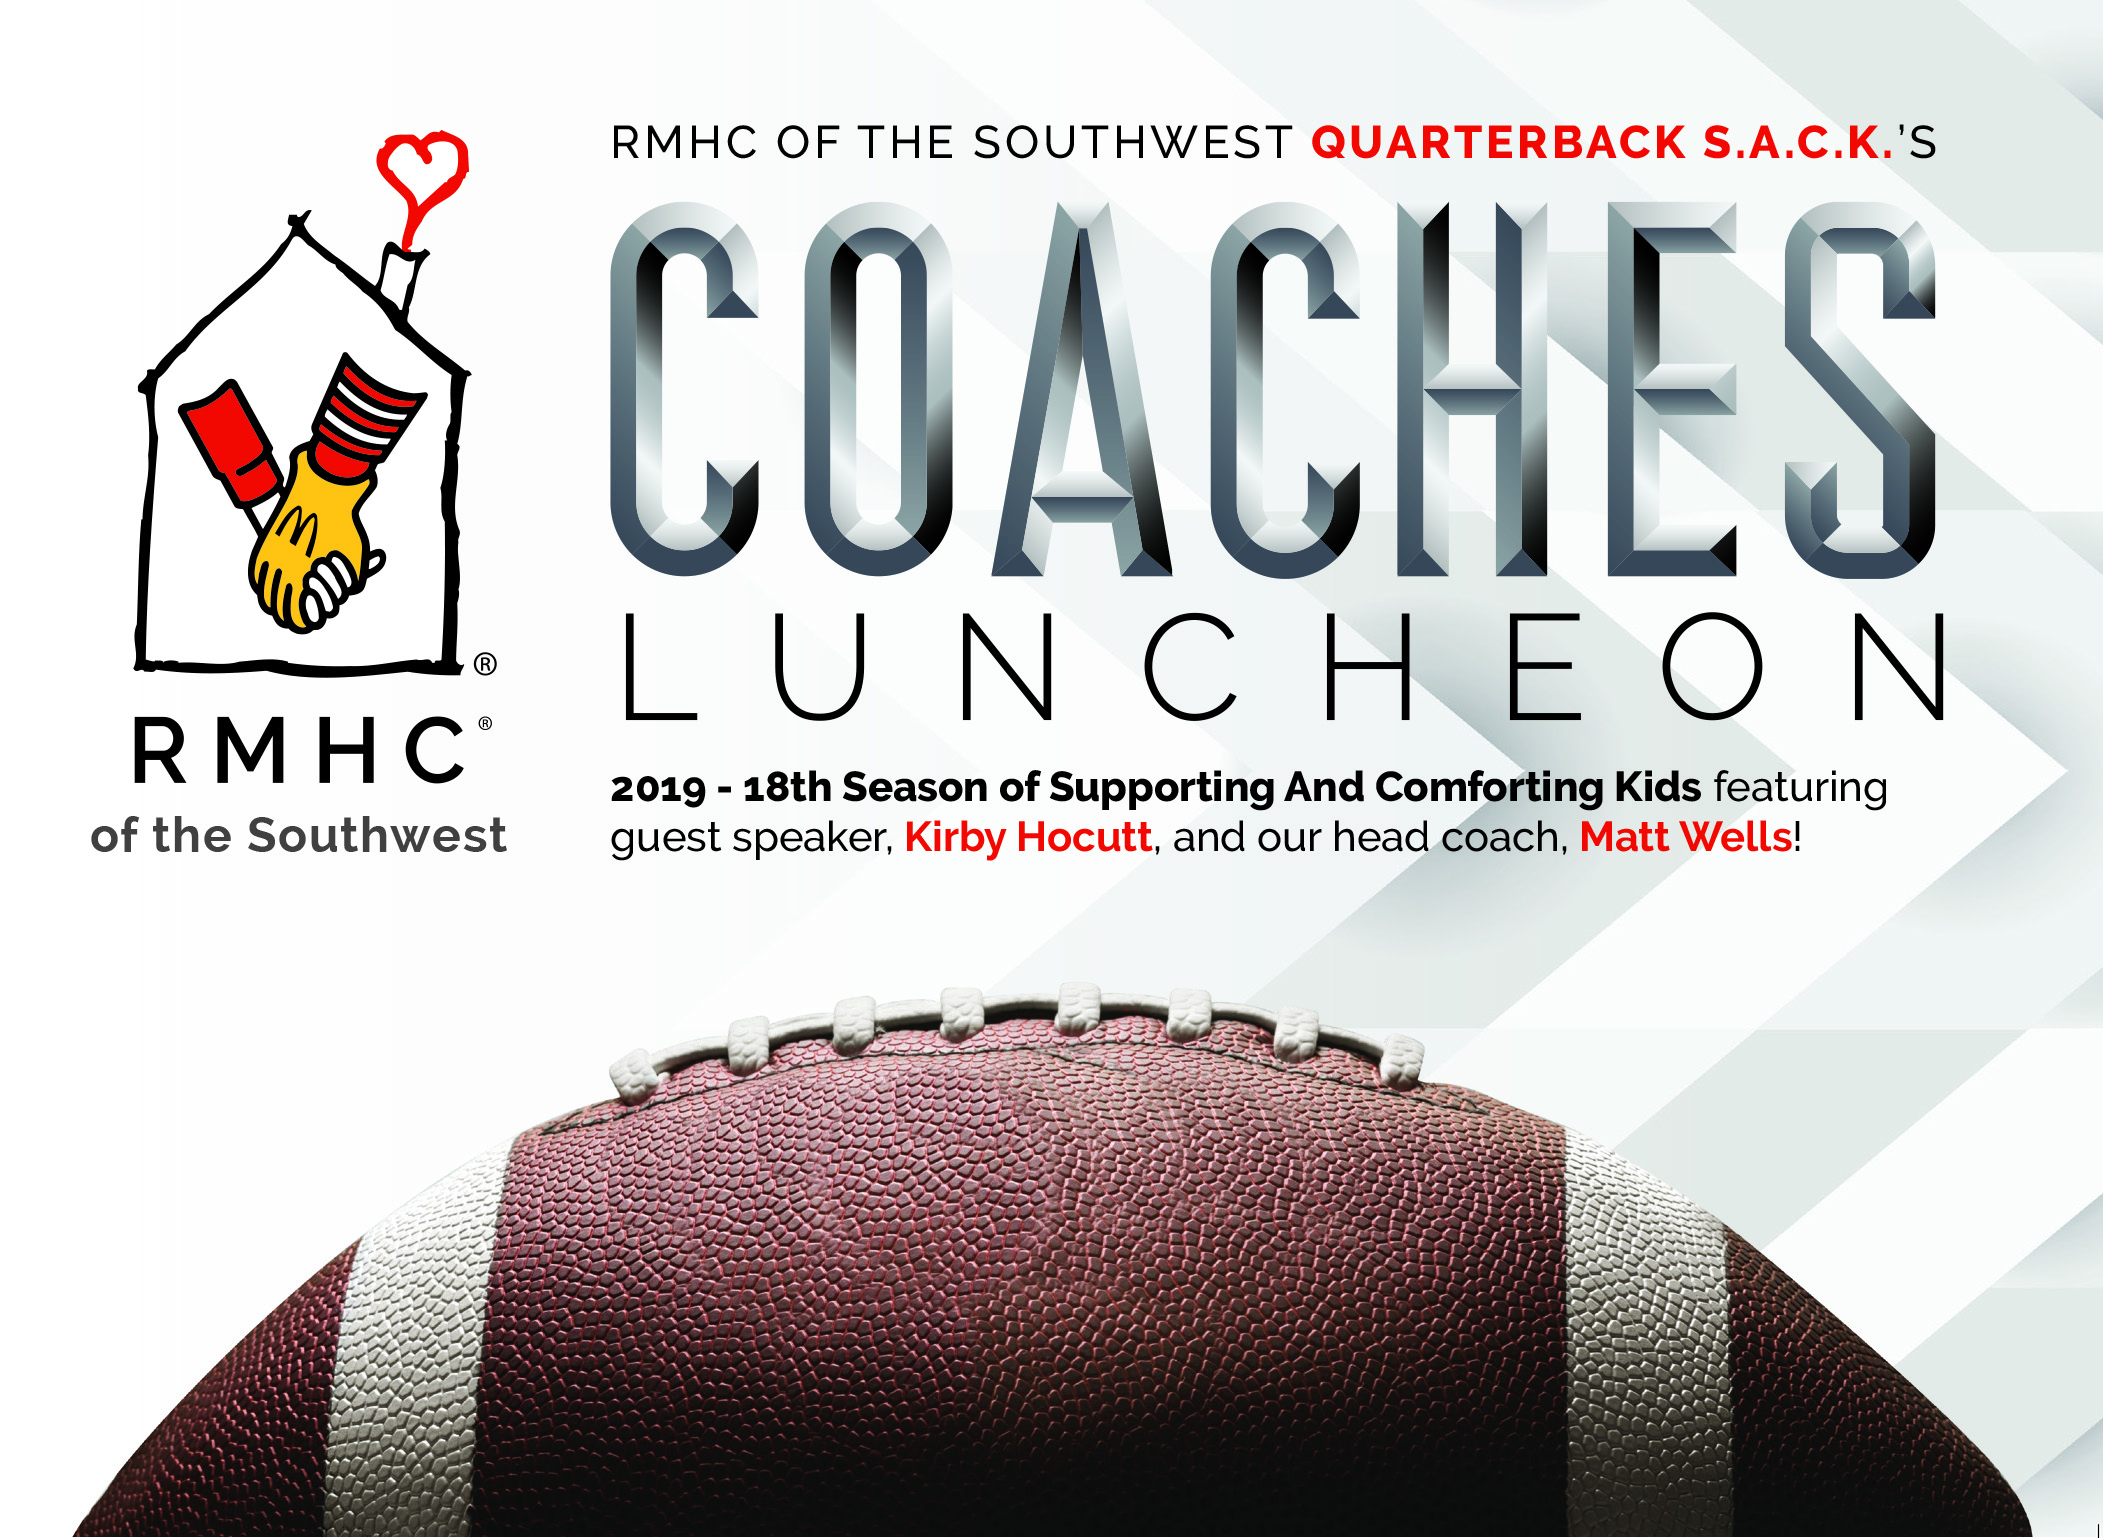 RMHC Coaches Luncheon